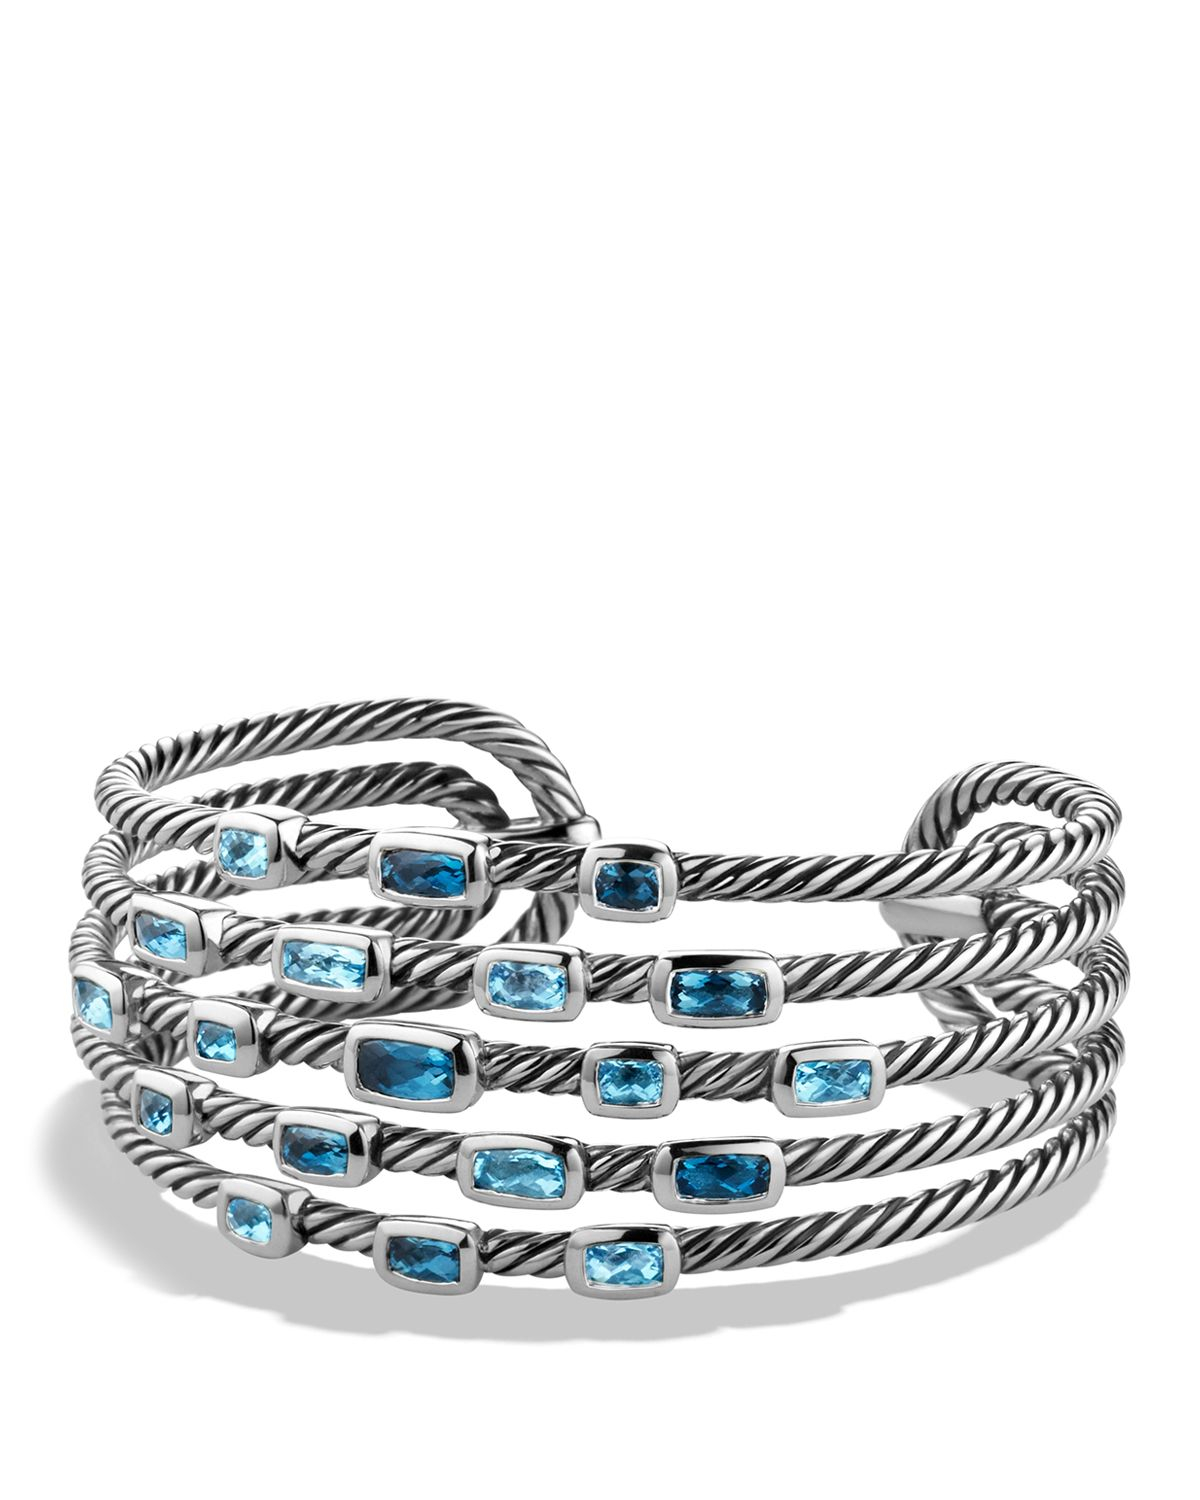 david yurman confetti wide cuff bracelet with blue topaz